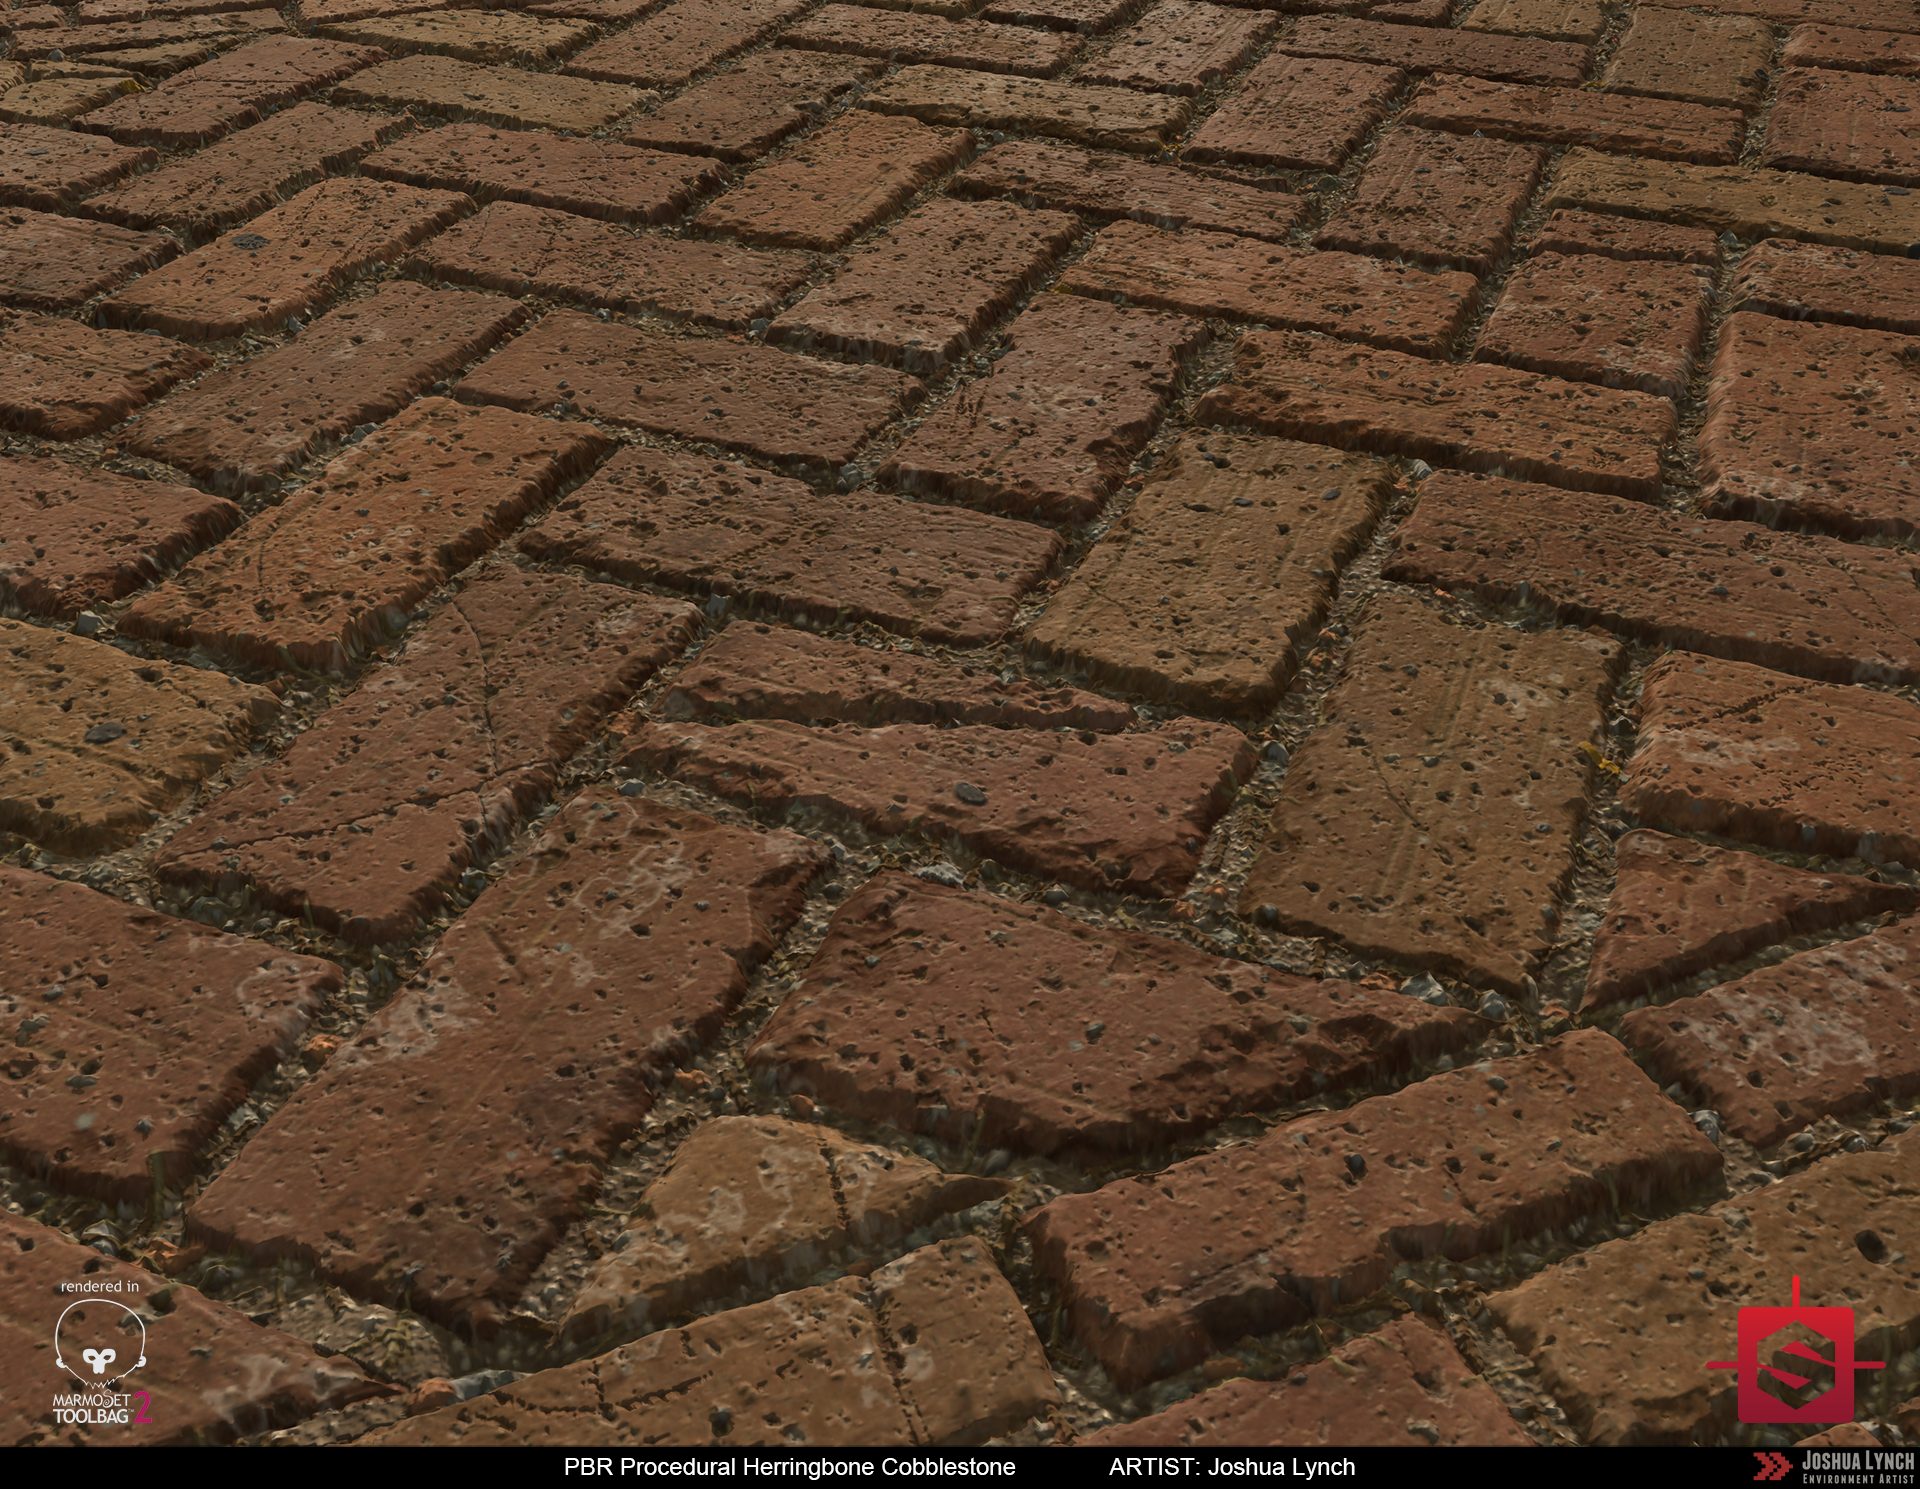 Floor_Cobblestone_Herringbone_Ground_Rev_05_Layout_Comp_Josh_Lynch.png